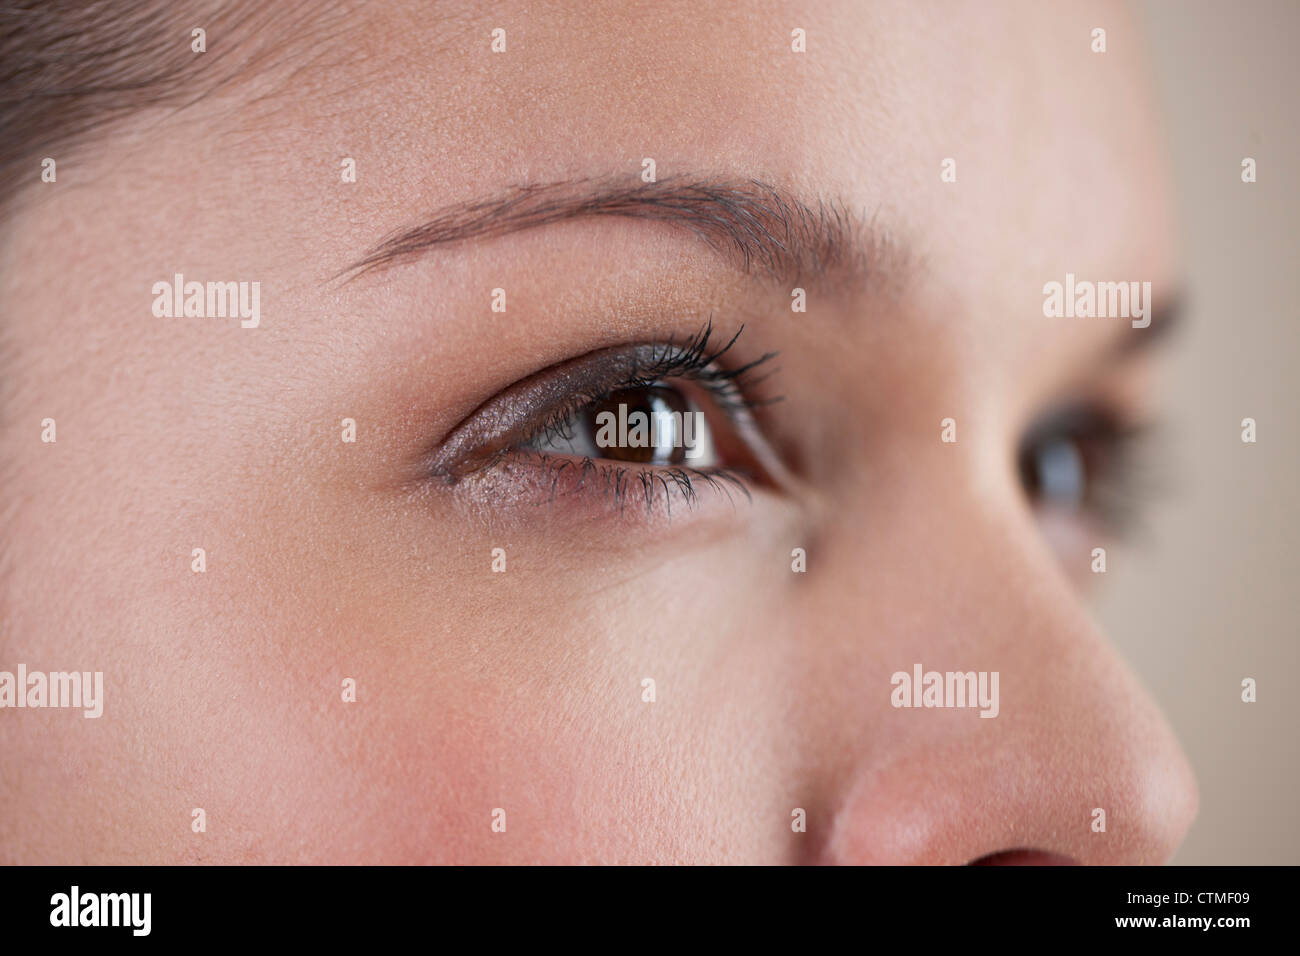 Close-up of a young woman with brown eyes, side view - Stock Image